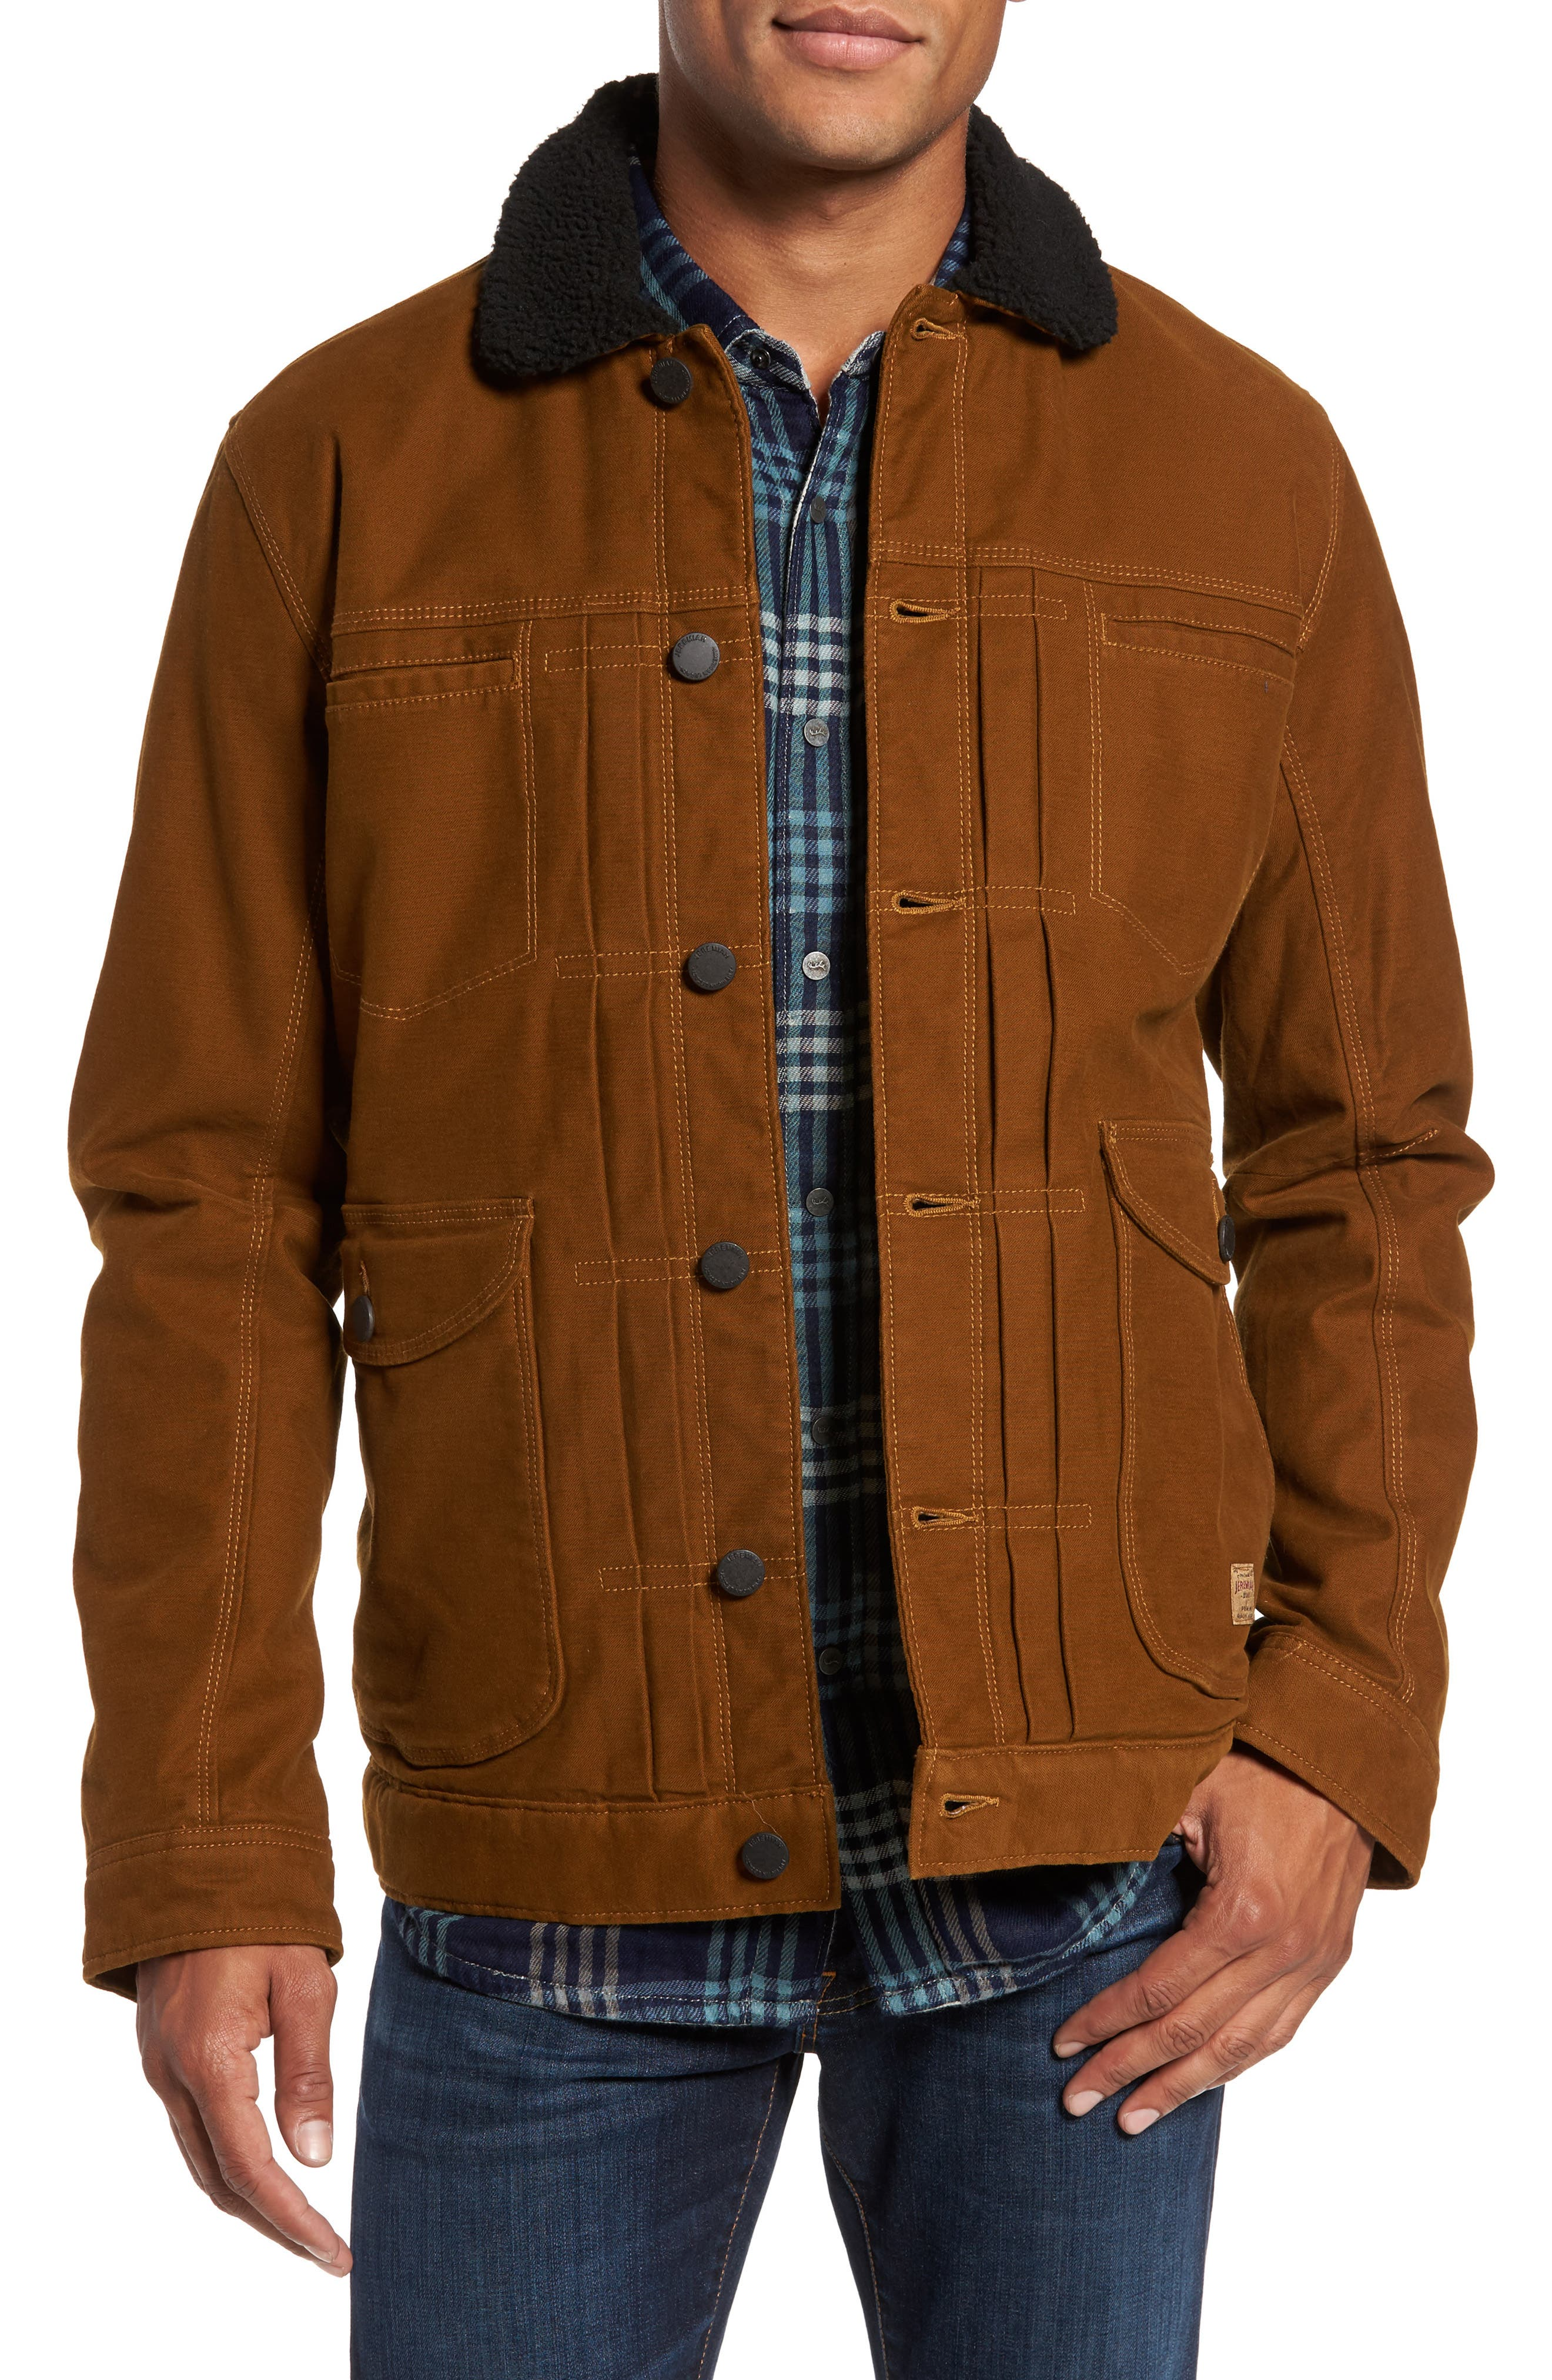 Alternate Image 1 Selected - Jeremiah Terra Broken Twill Jacket with Faux Shearling Trim